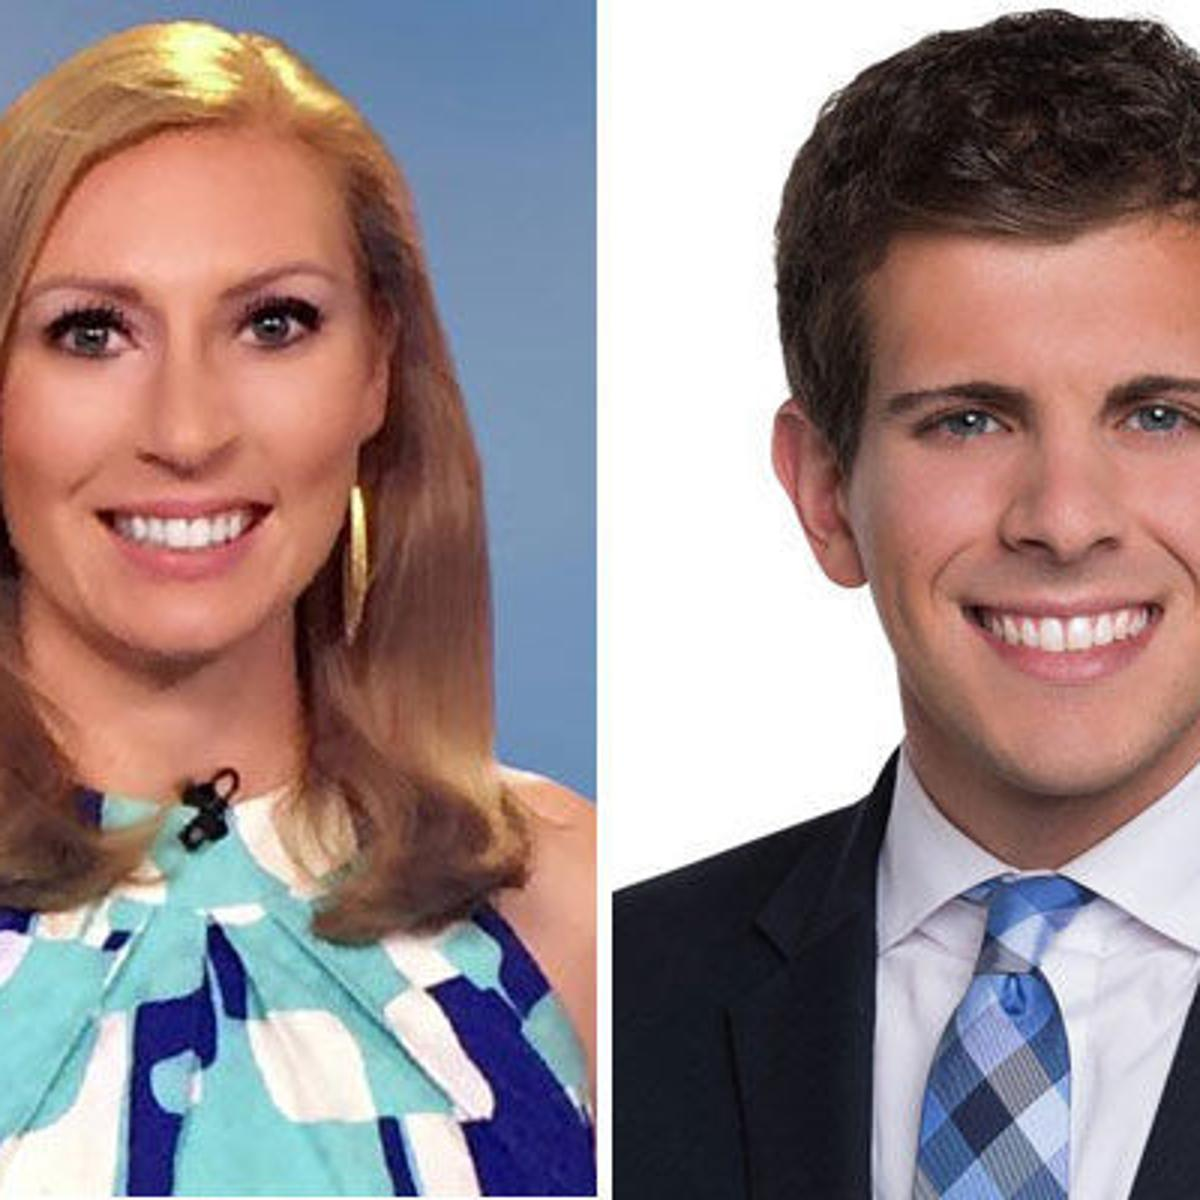 Will KSDK's staff turnover allow for love connection? | Joe's St